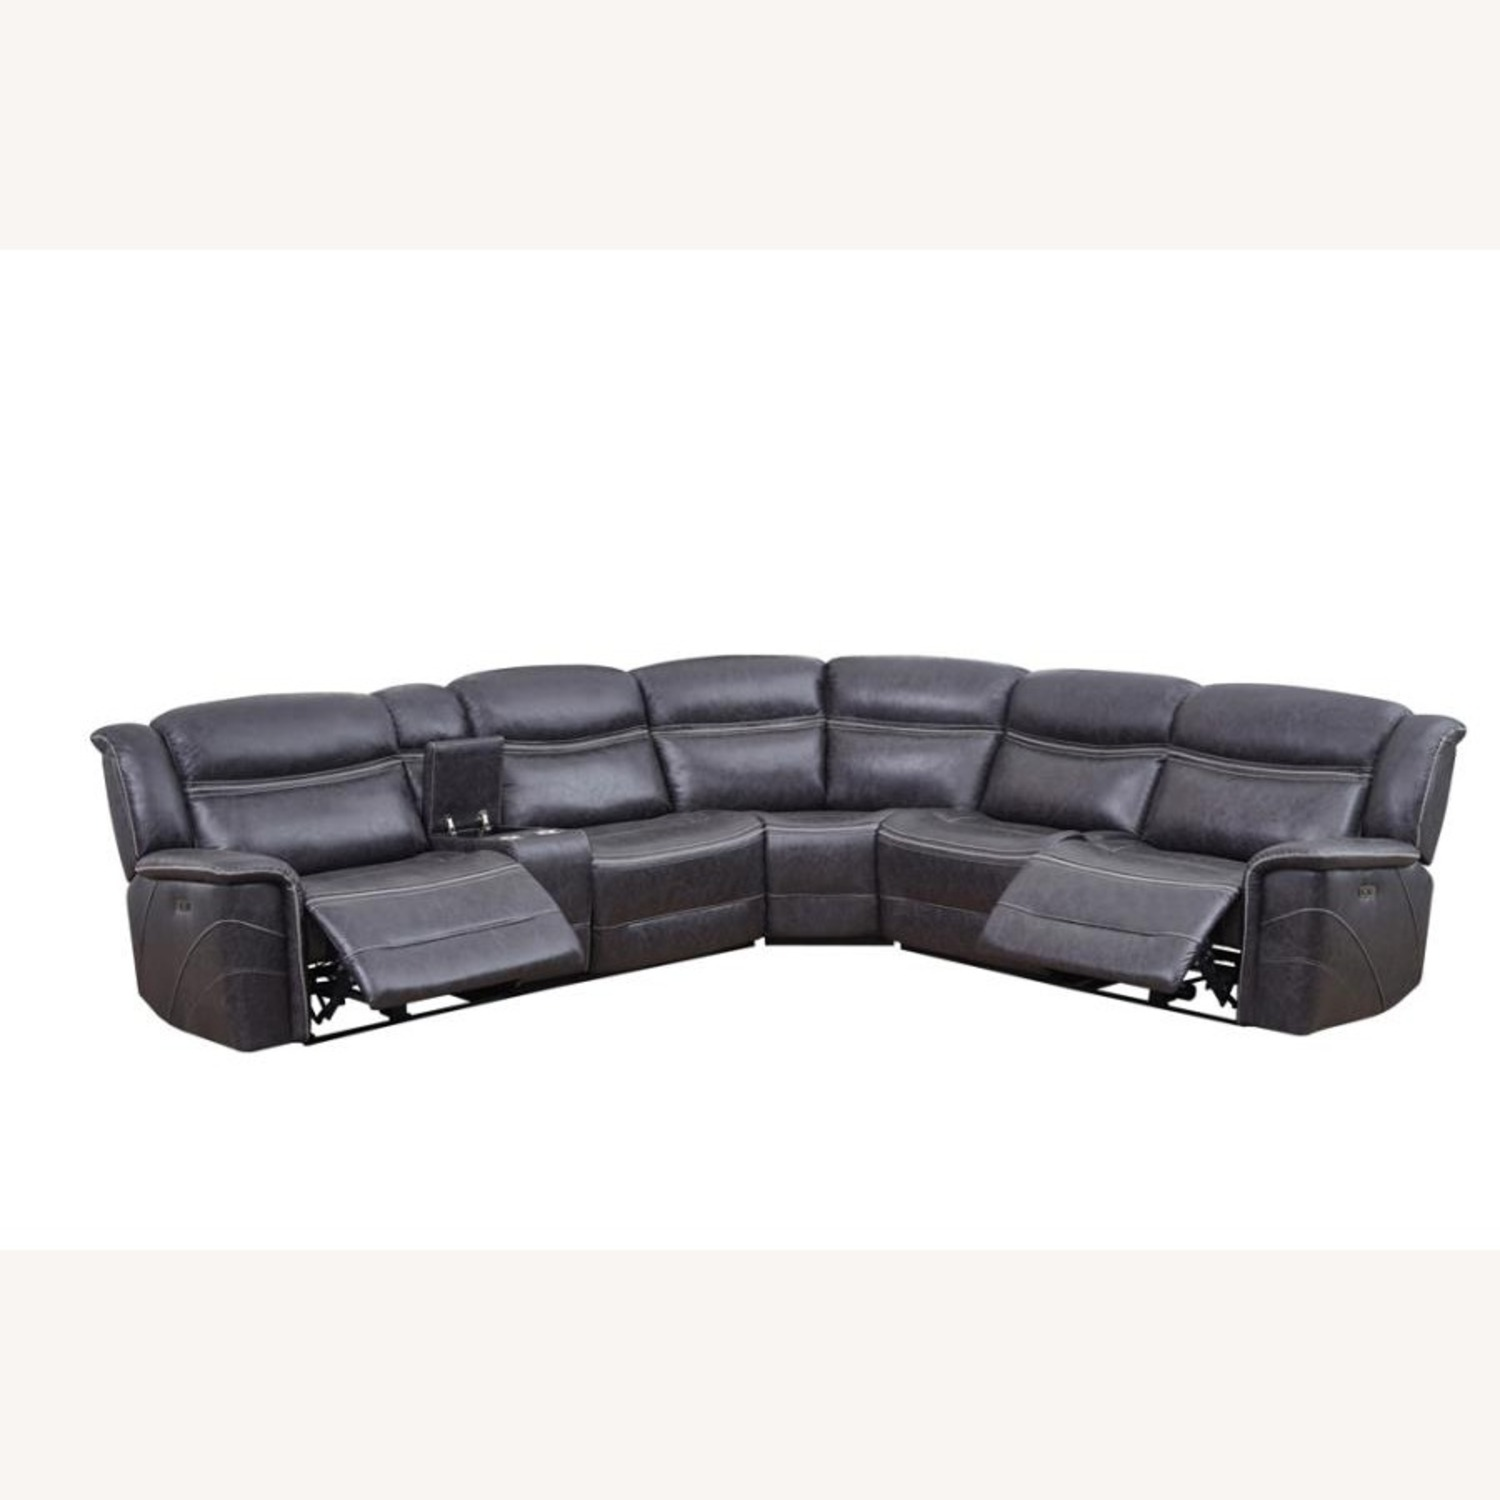 6-Piece Motion Sectional In Charcoal Faux Suede - image-1